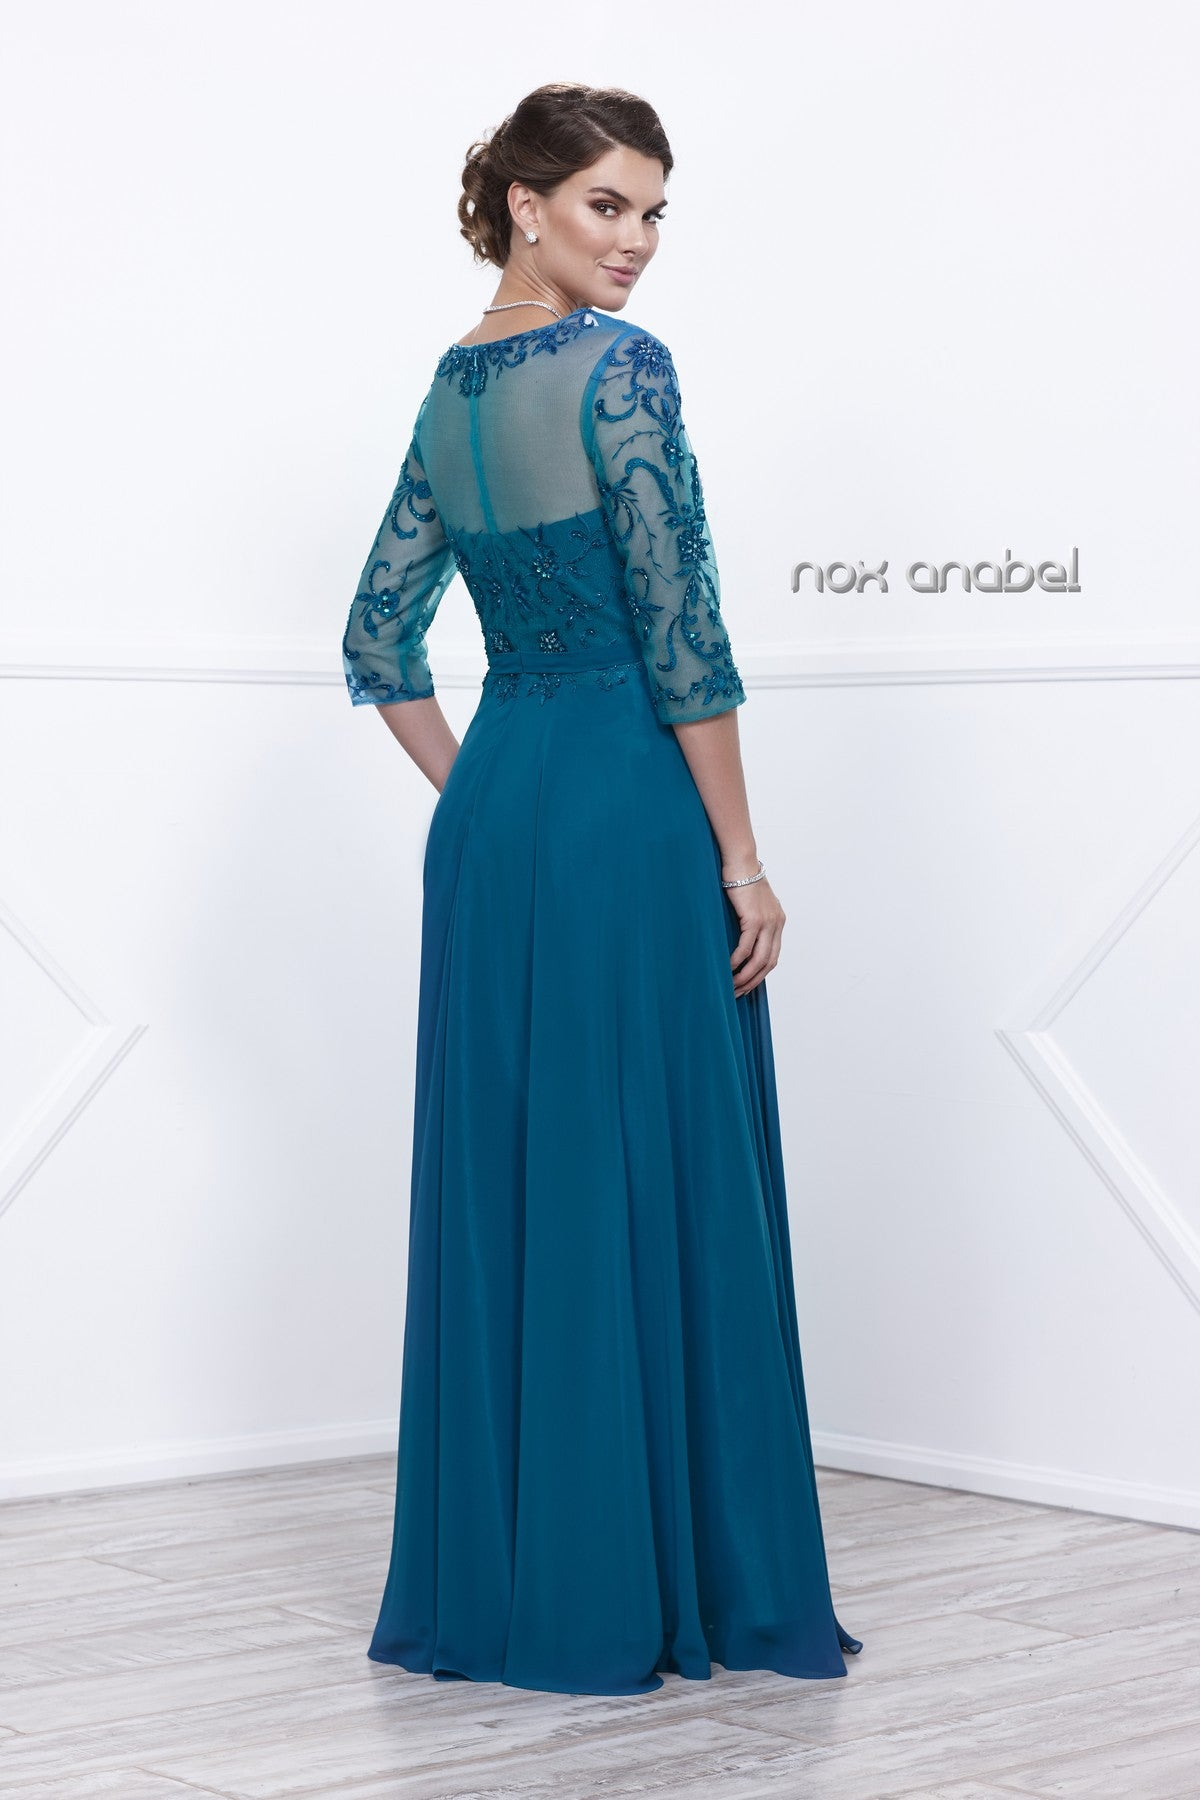 Teal Sheer Quarter Sleeves Illusion Embroidered Formal Dress Back View